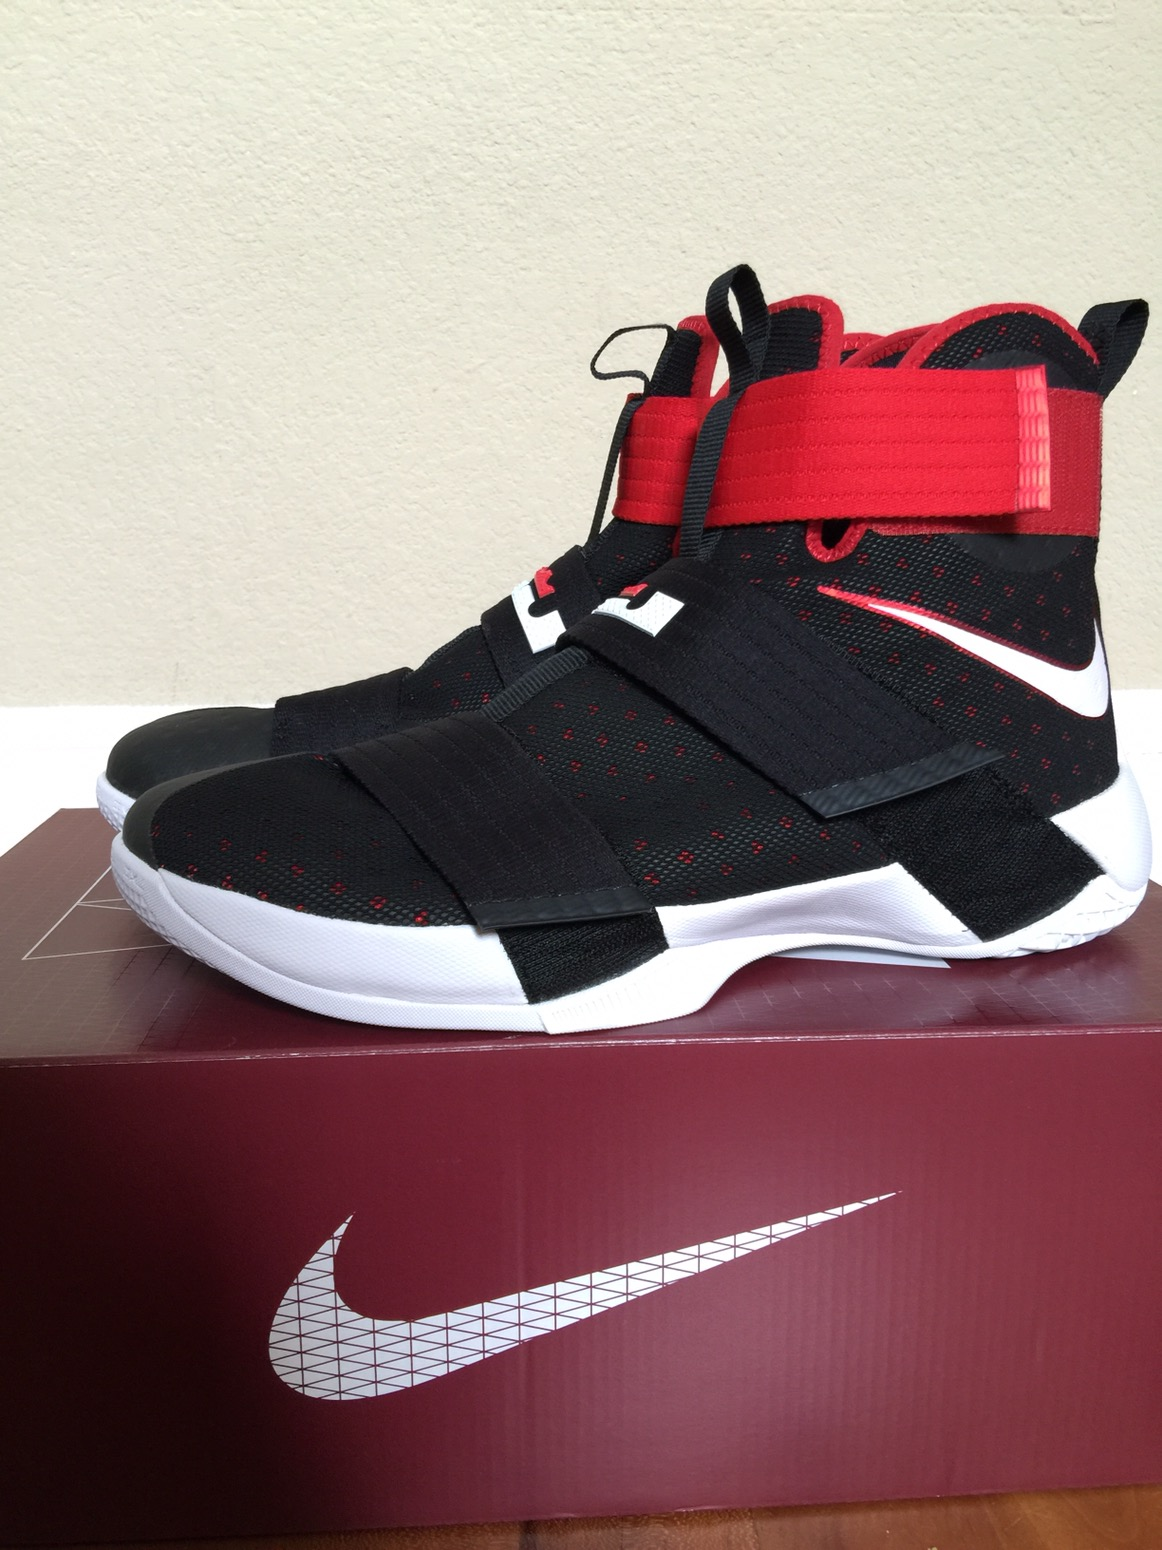 Nike Lebron Soldier X 10 Performance Review